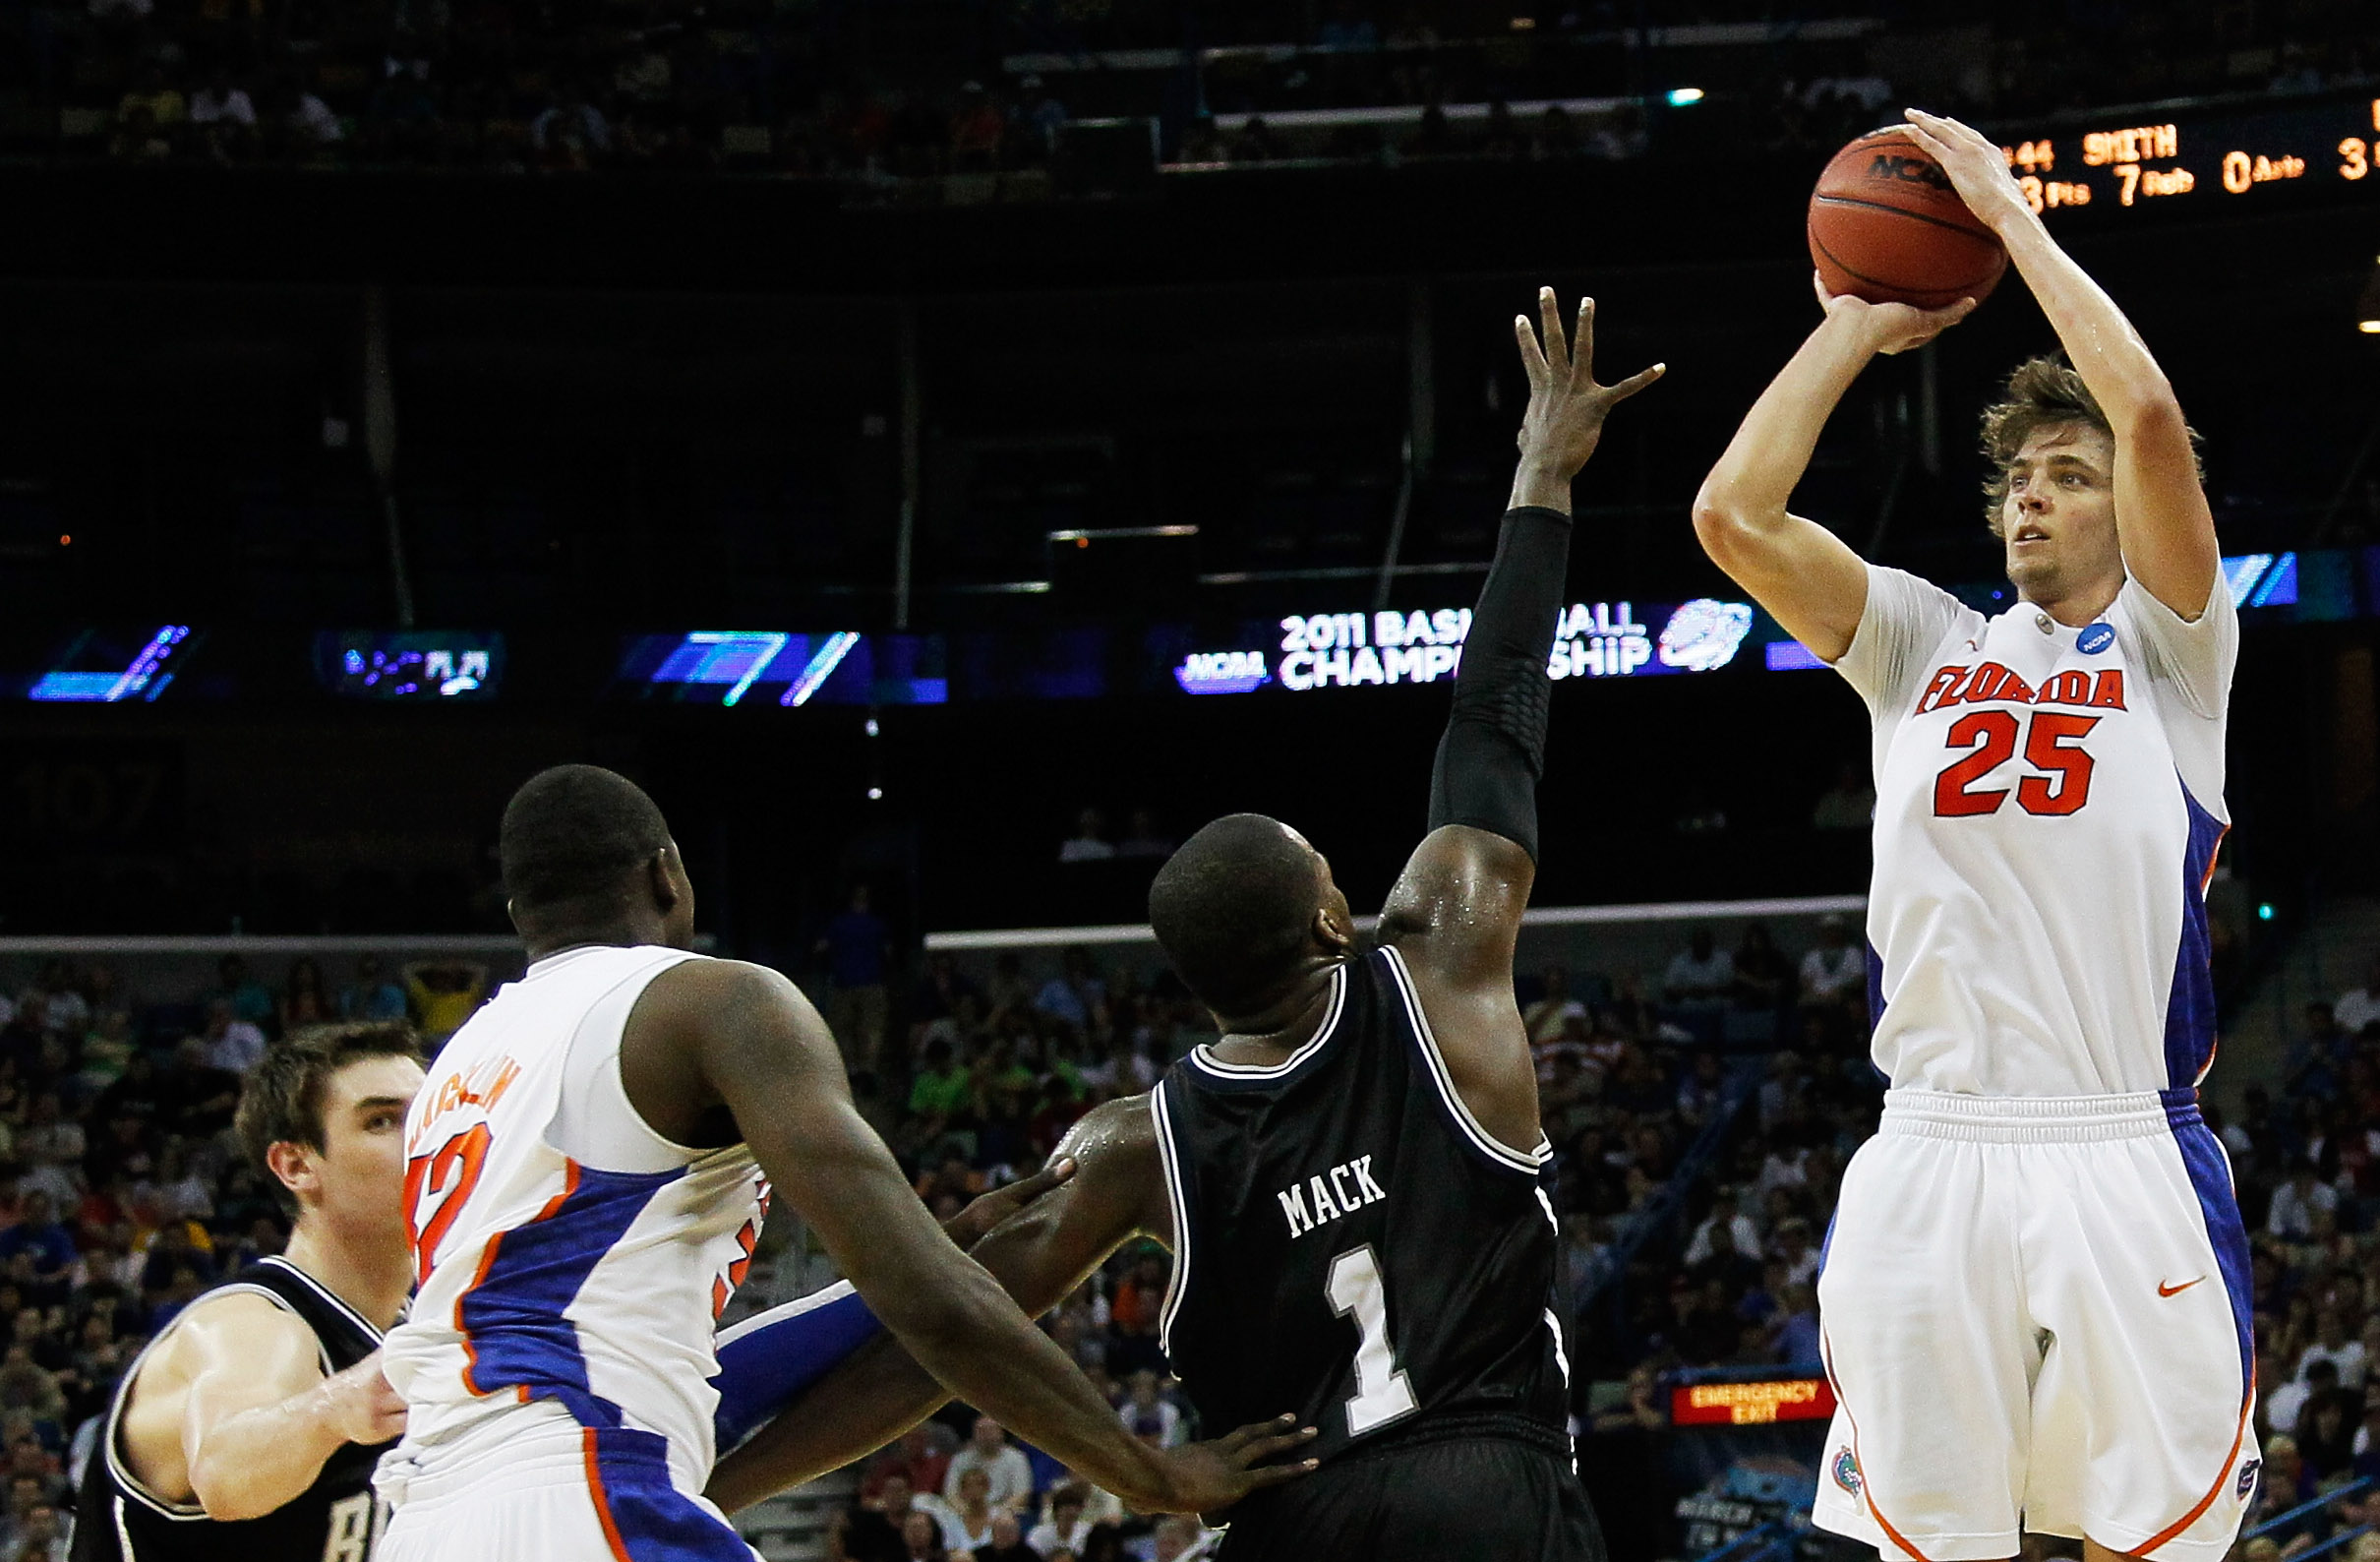 NEW ORLEANS, LA - MARCH 26:  Chandler Parsons #25 of the Florida Gators shoots over Shelvin Mack #1 of the Butler Bulldogs during the Southeast regional final of the 2011 NCAA men's basketball tournament at New Orleans Arena on March 26, 2011 in New Orlea